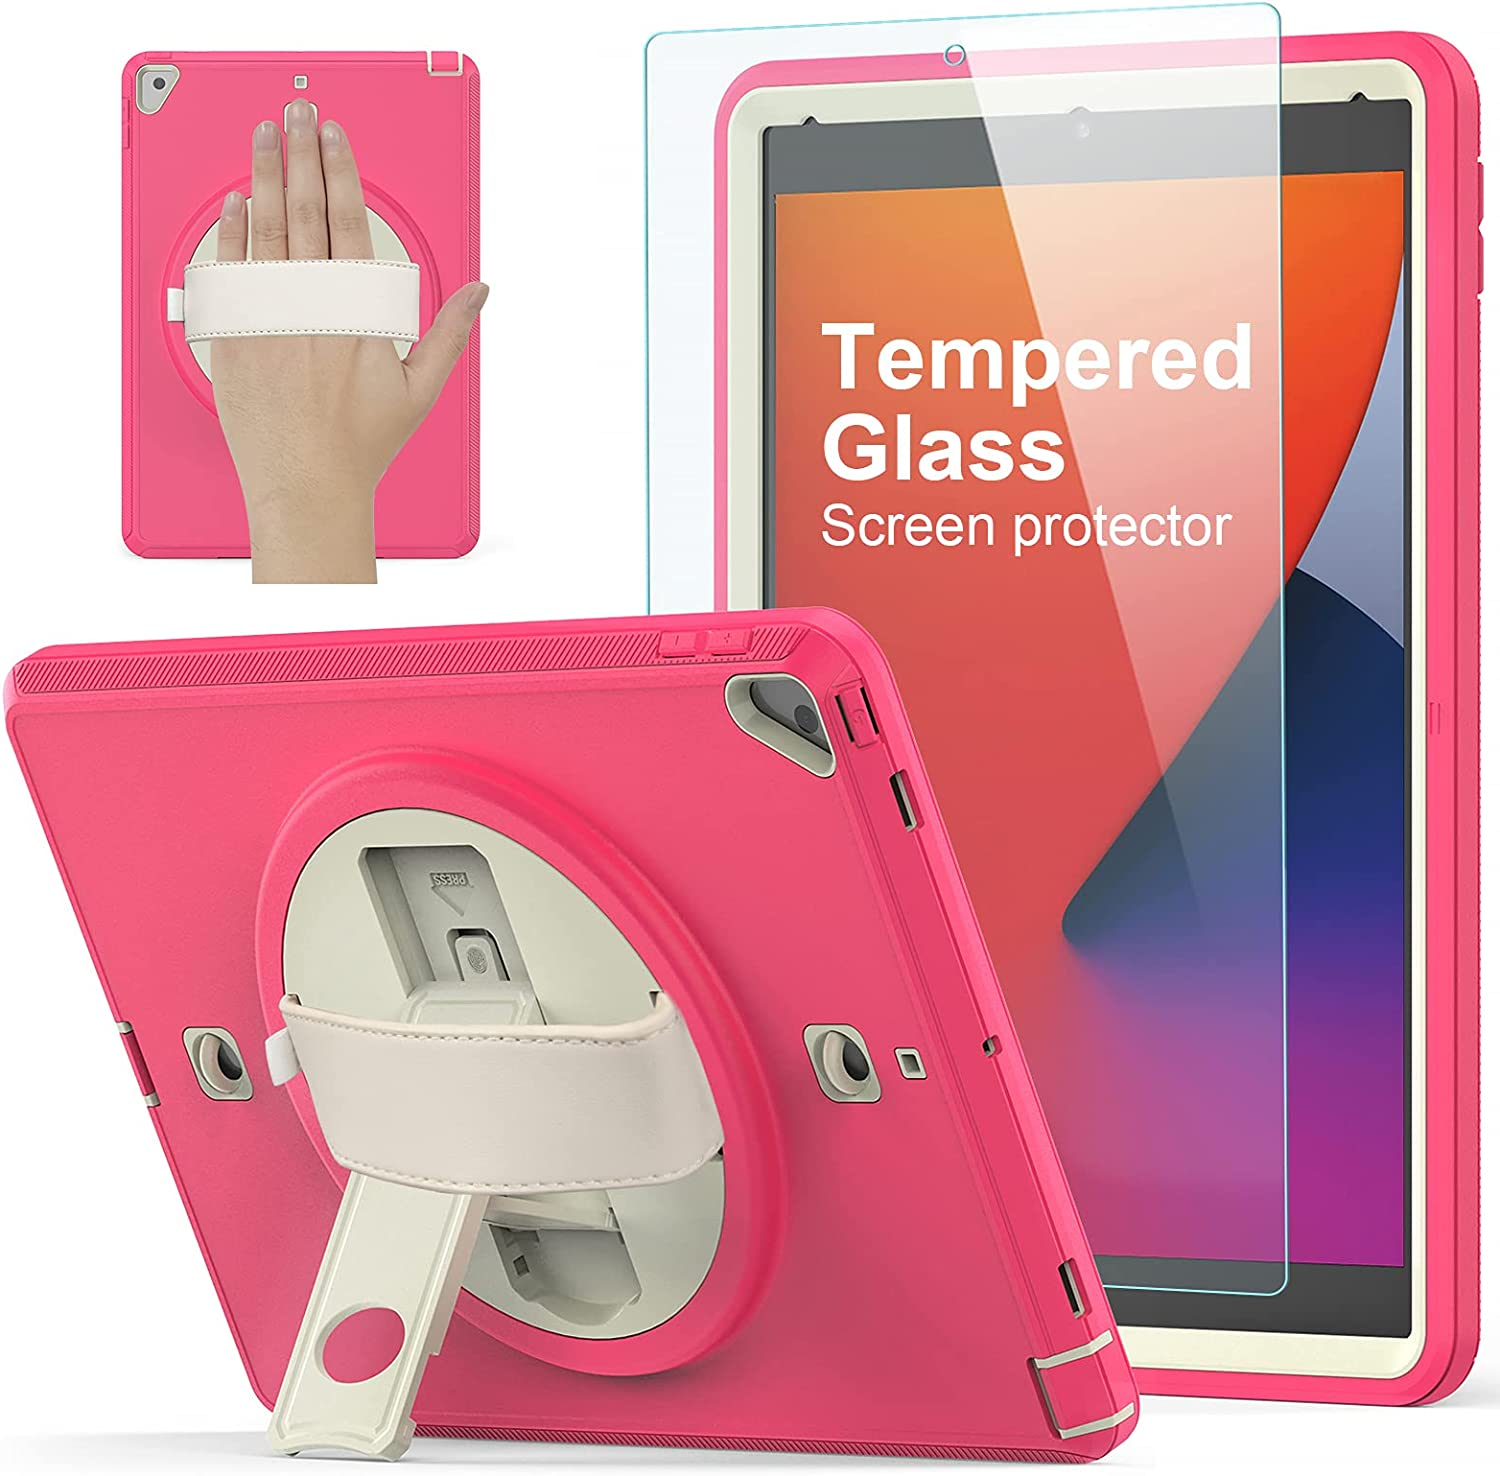 iPad 8th/7th Generation Case, iPad 10.2 Case 2020/2019, [360° Rotatable Kickstand & Hand Strap] Ambison Full Body Protective Case with Tempered Glass, Upgraded Version Shoulder Strap (Rose Red)